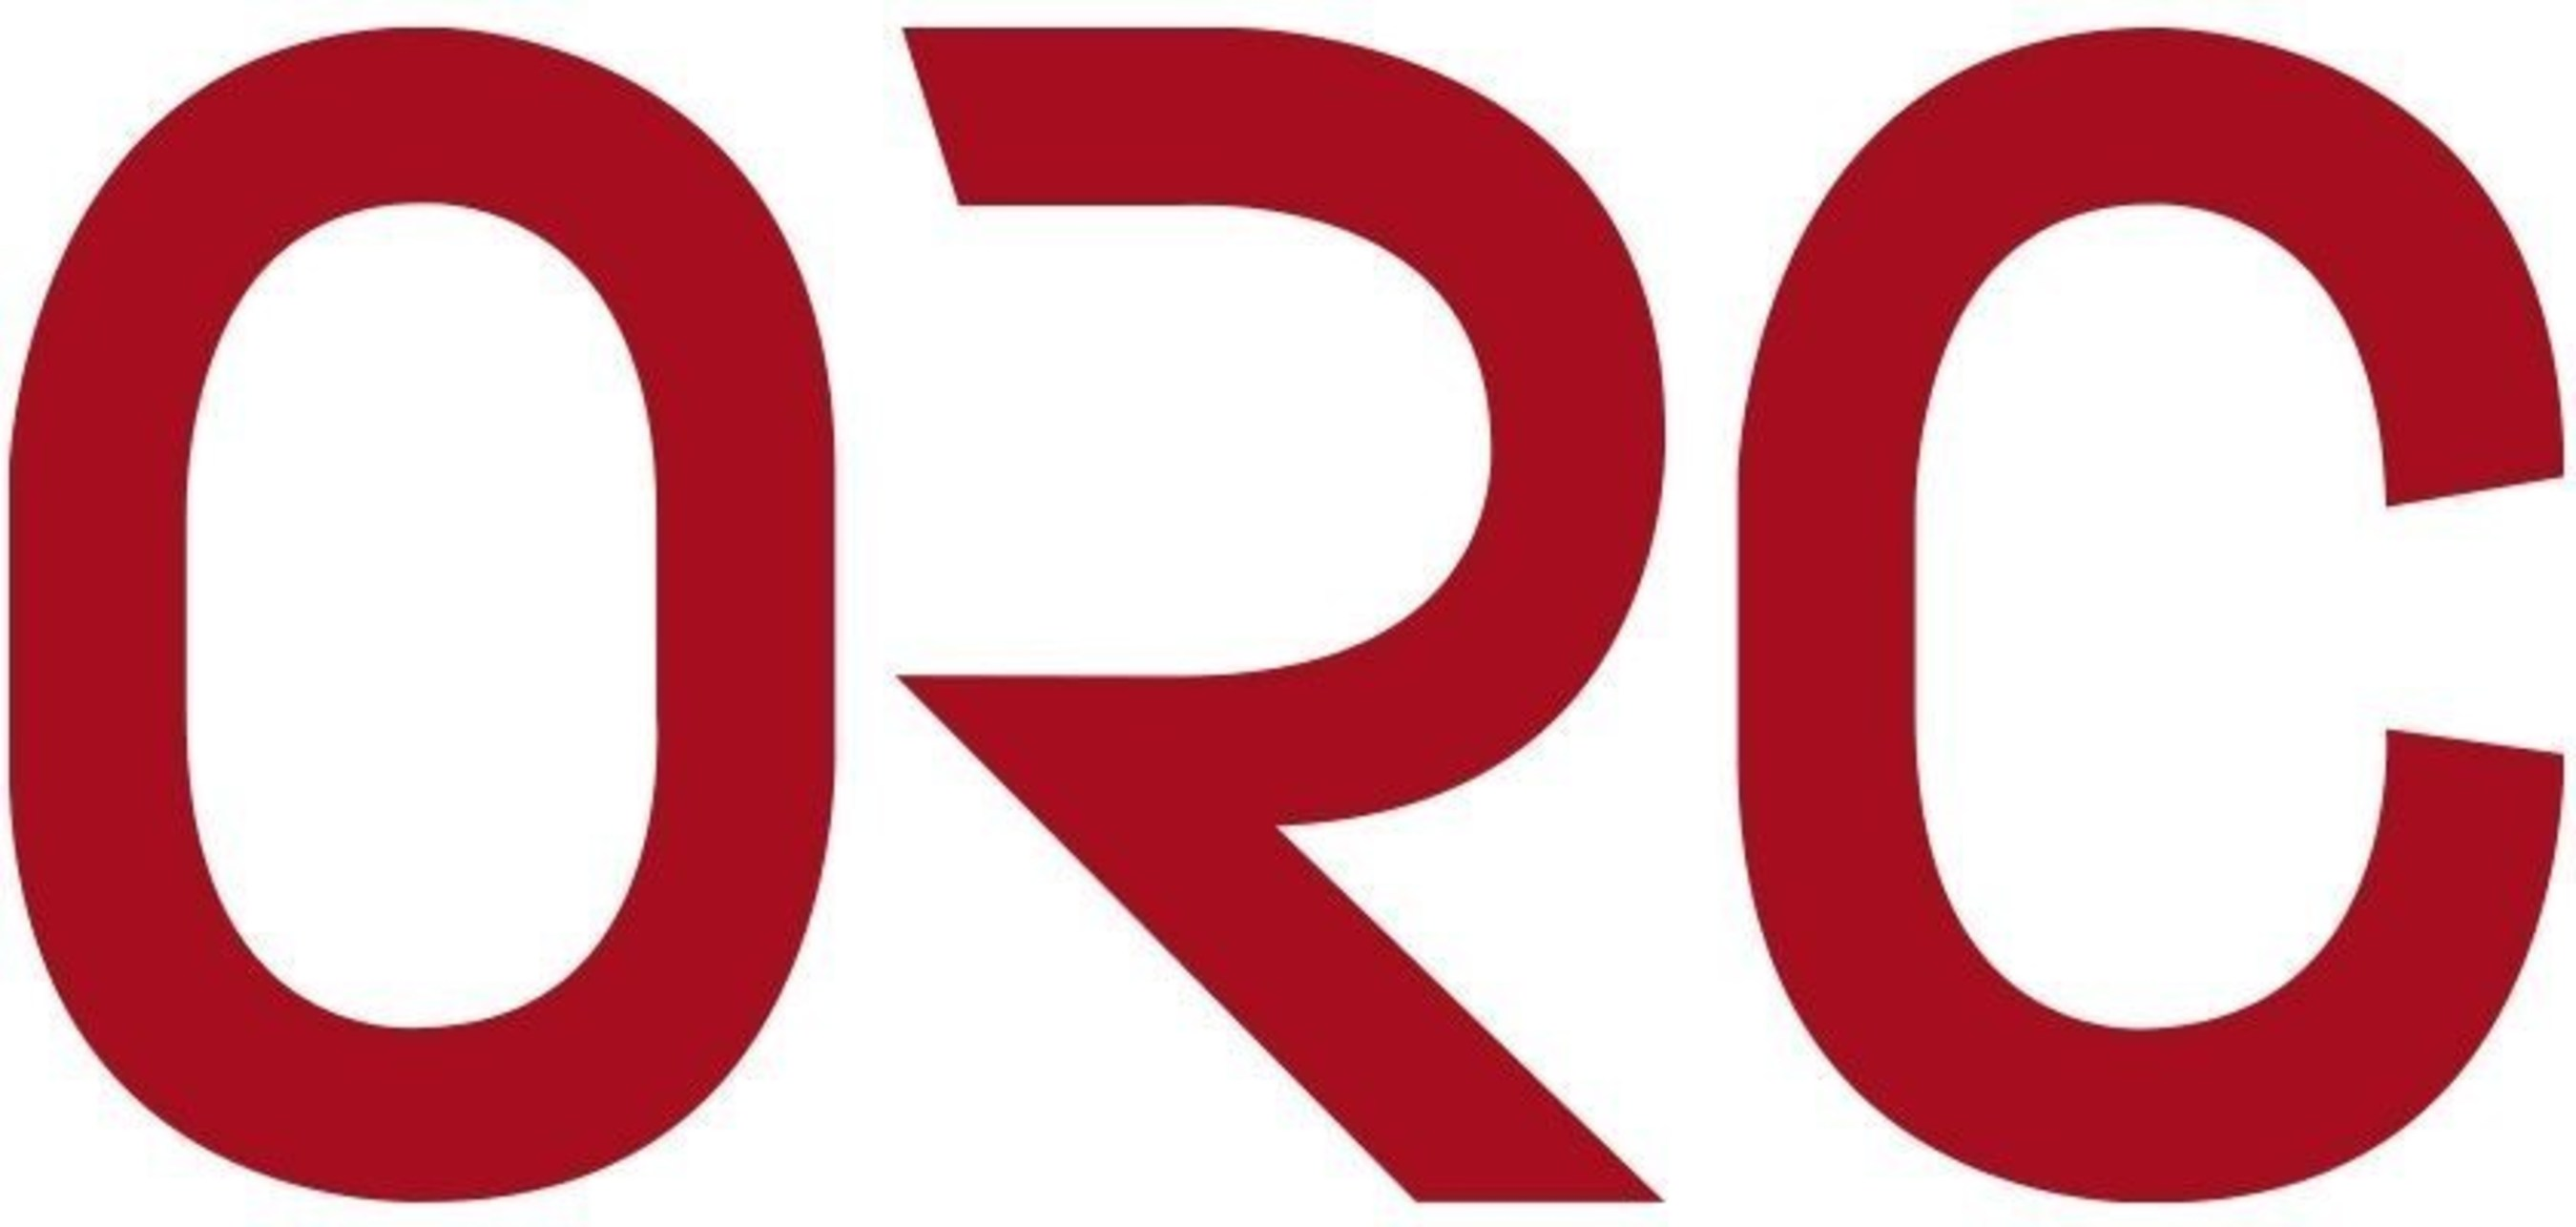 Shanghai ShenYi Investment Co. Deploys Orc to Enhance Options Trading Capability in China